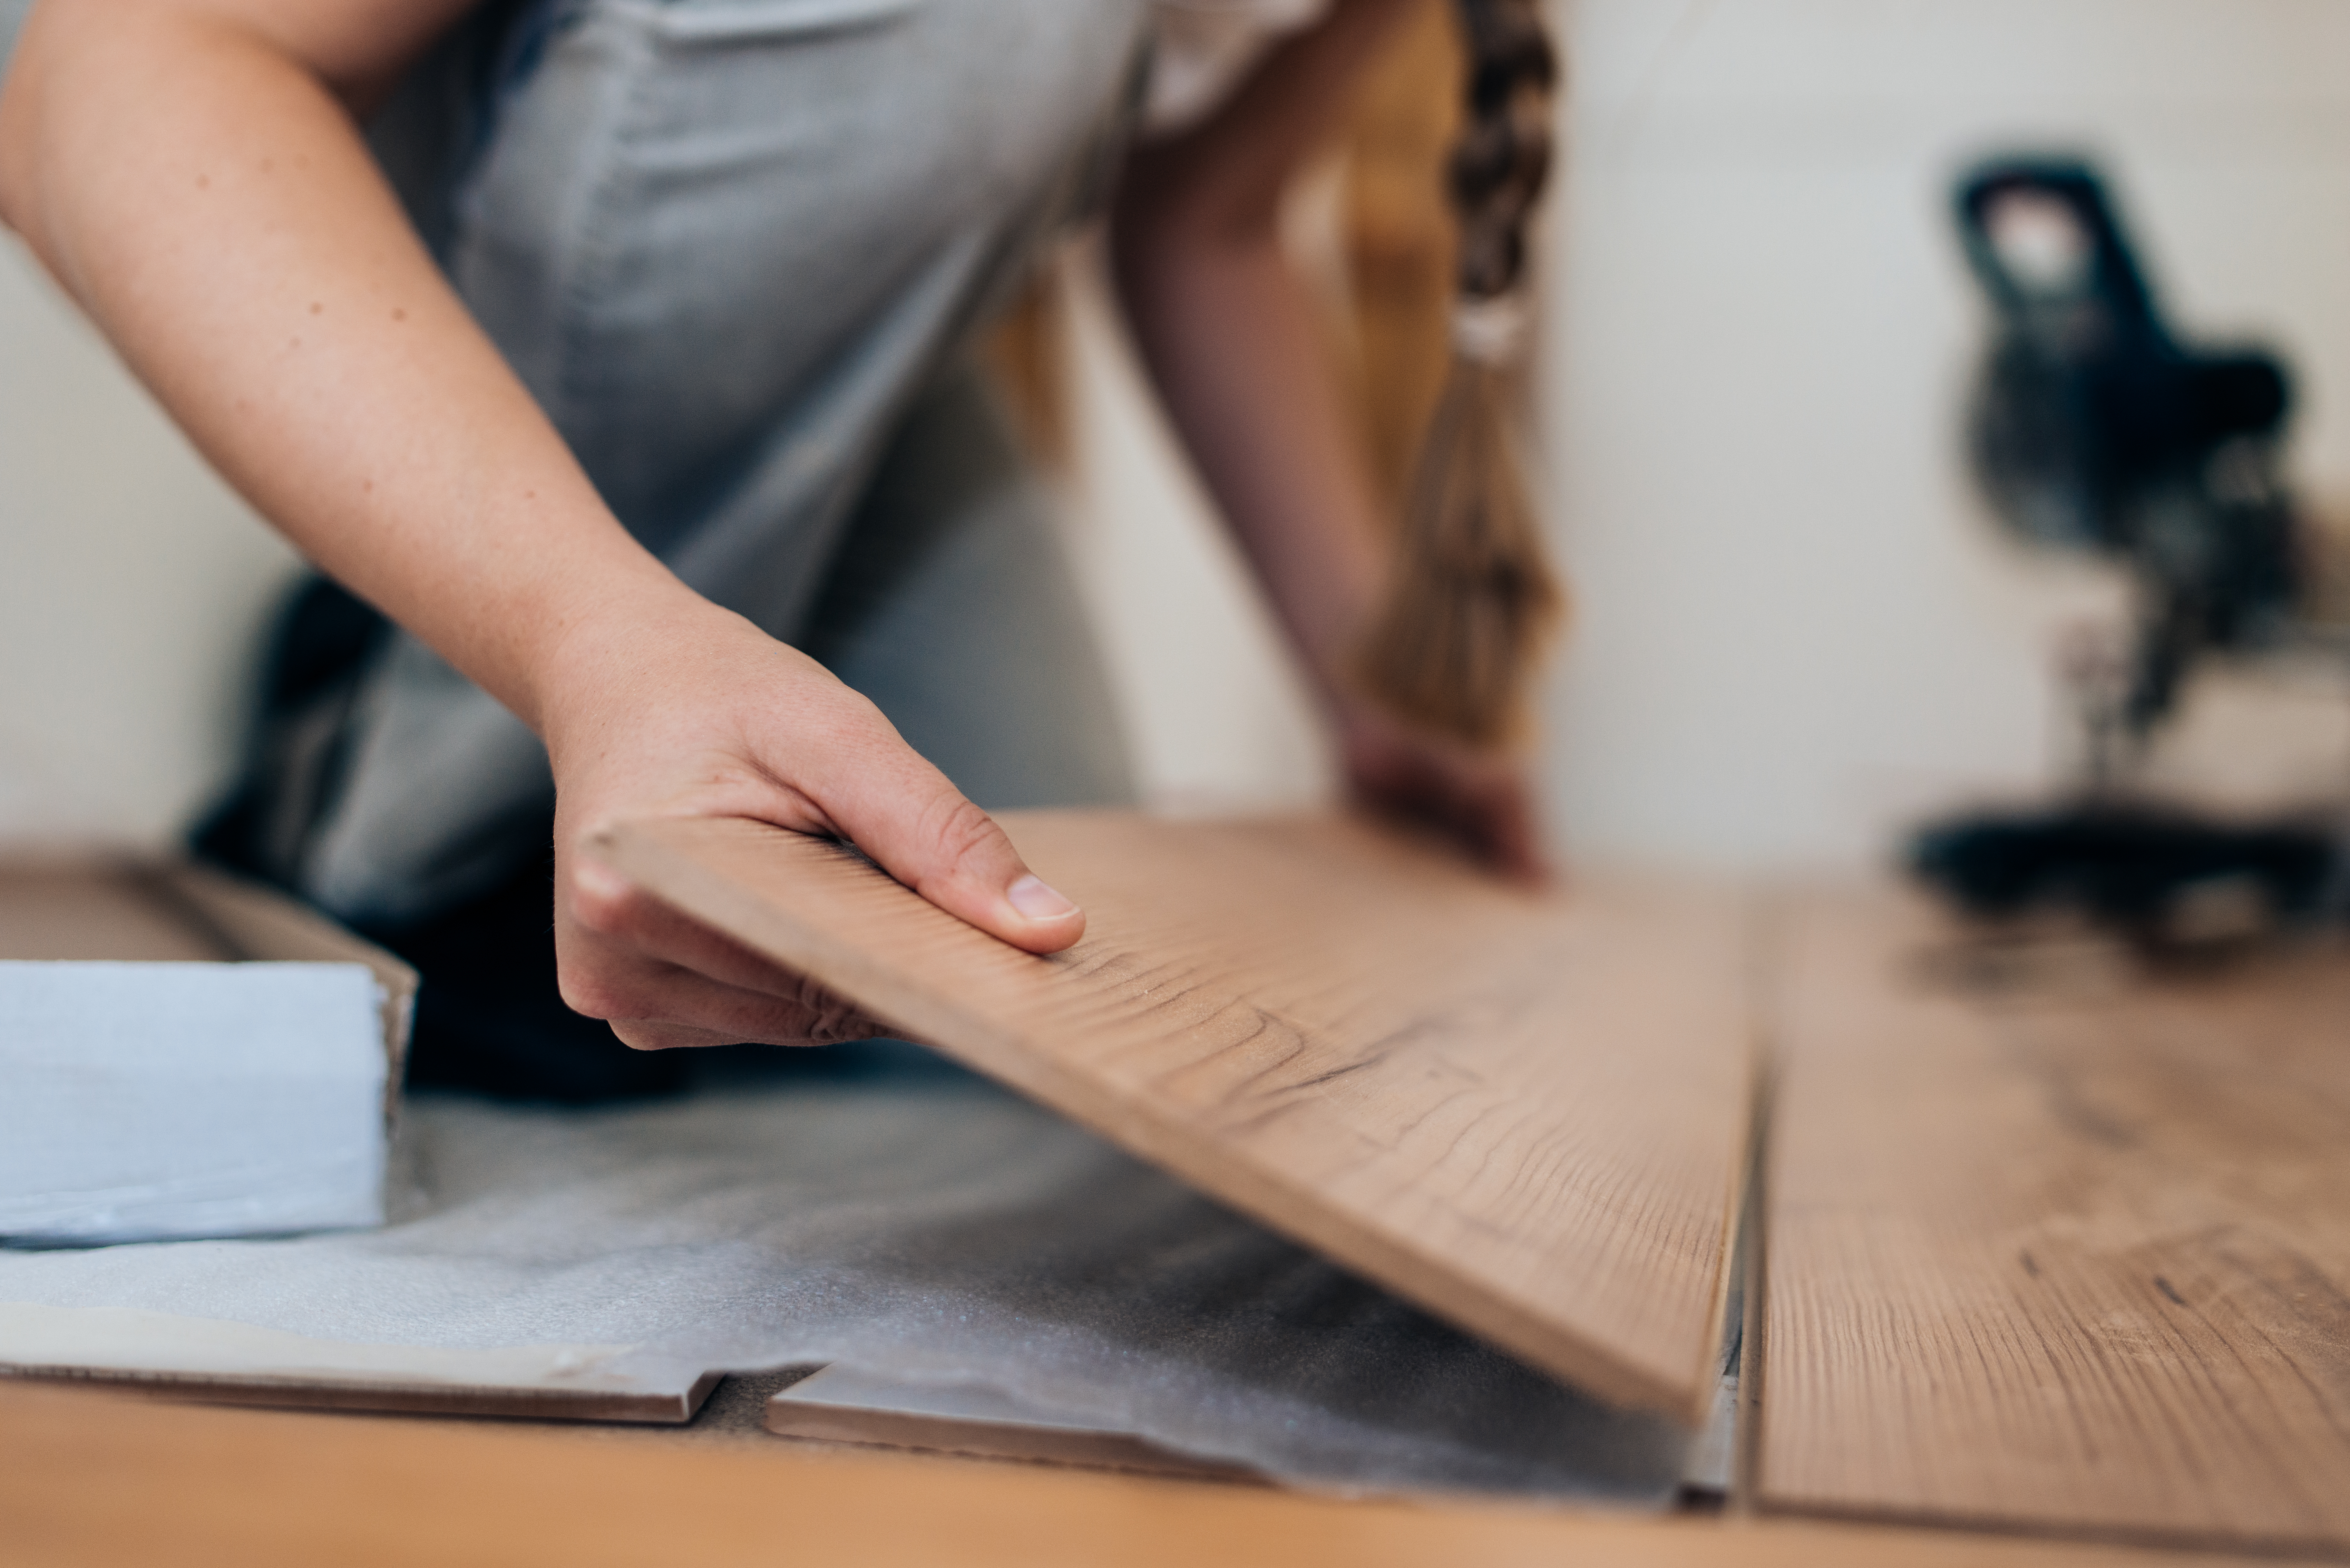 How Much Time Does It Take to Install Laminate Wood Flooring?